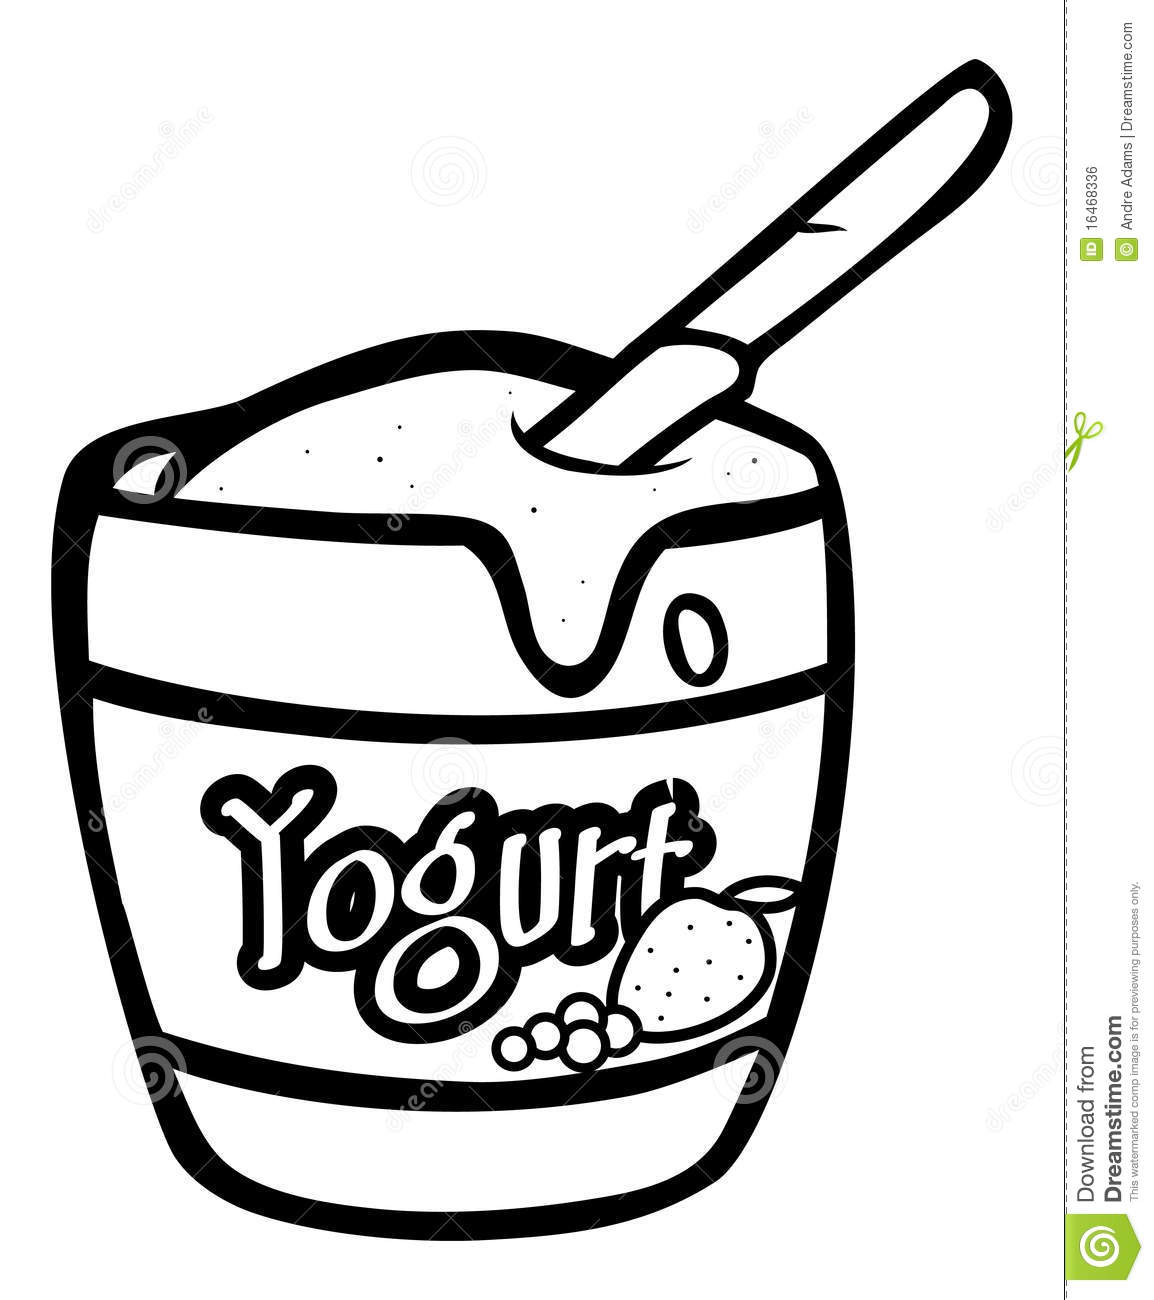 Yogurt Line Drawing : Yogurt clipart black and white panda free